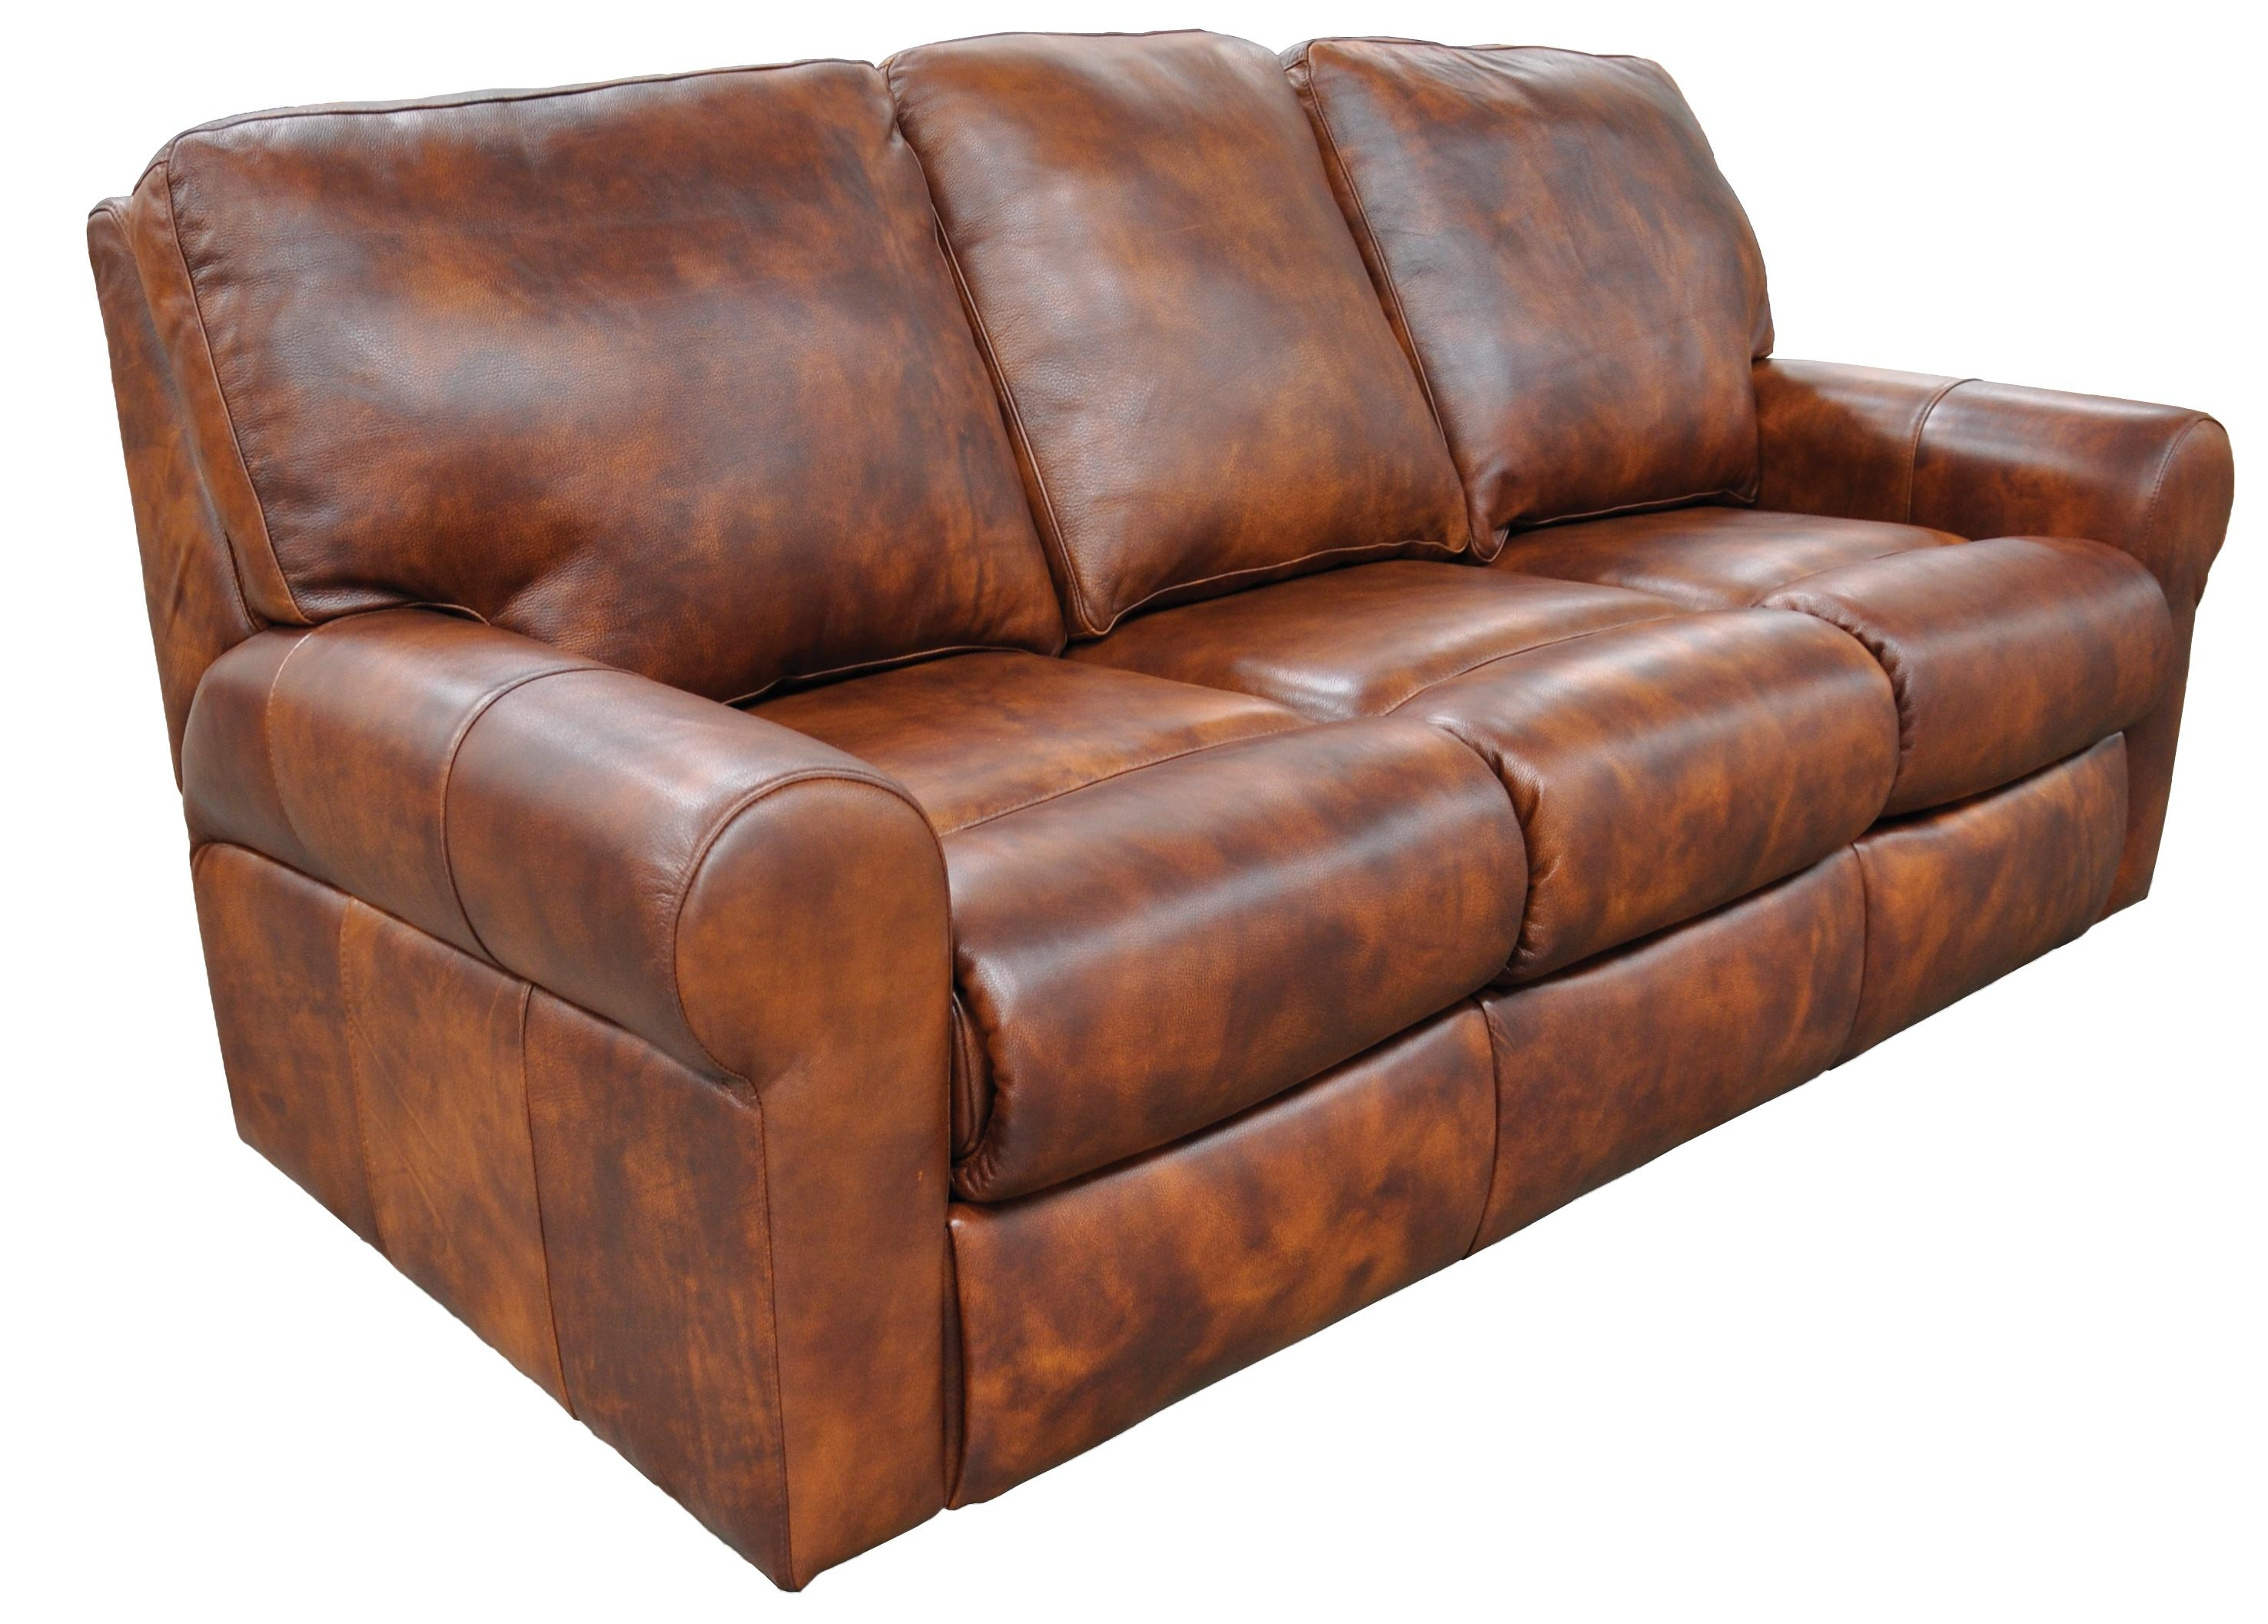 Sofa Sleepers Piedmont Leather Furniture |Texas Leather For Piedmont Sofas (Image 20 of 20)